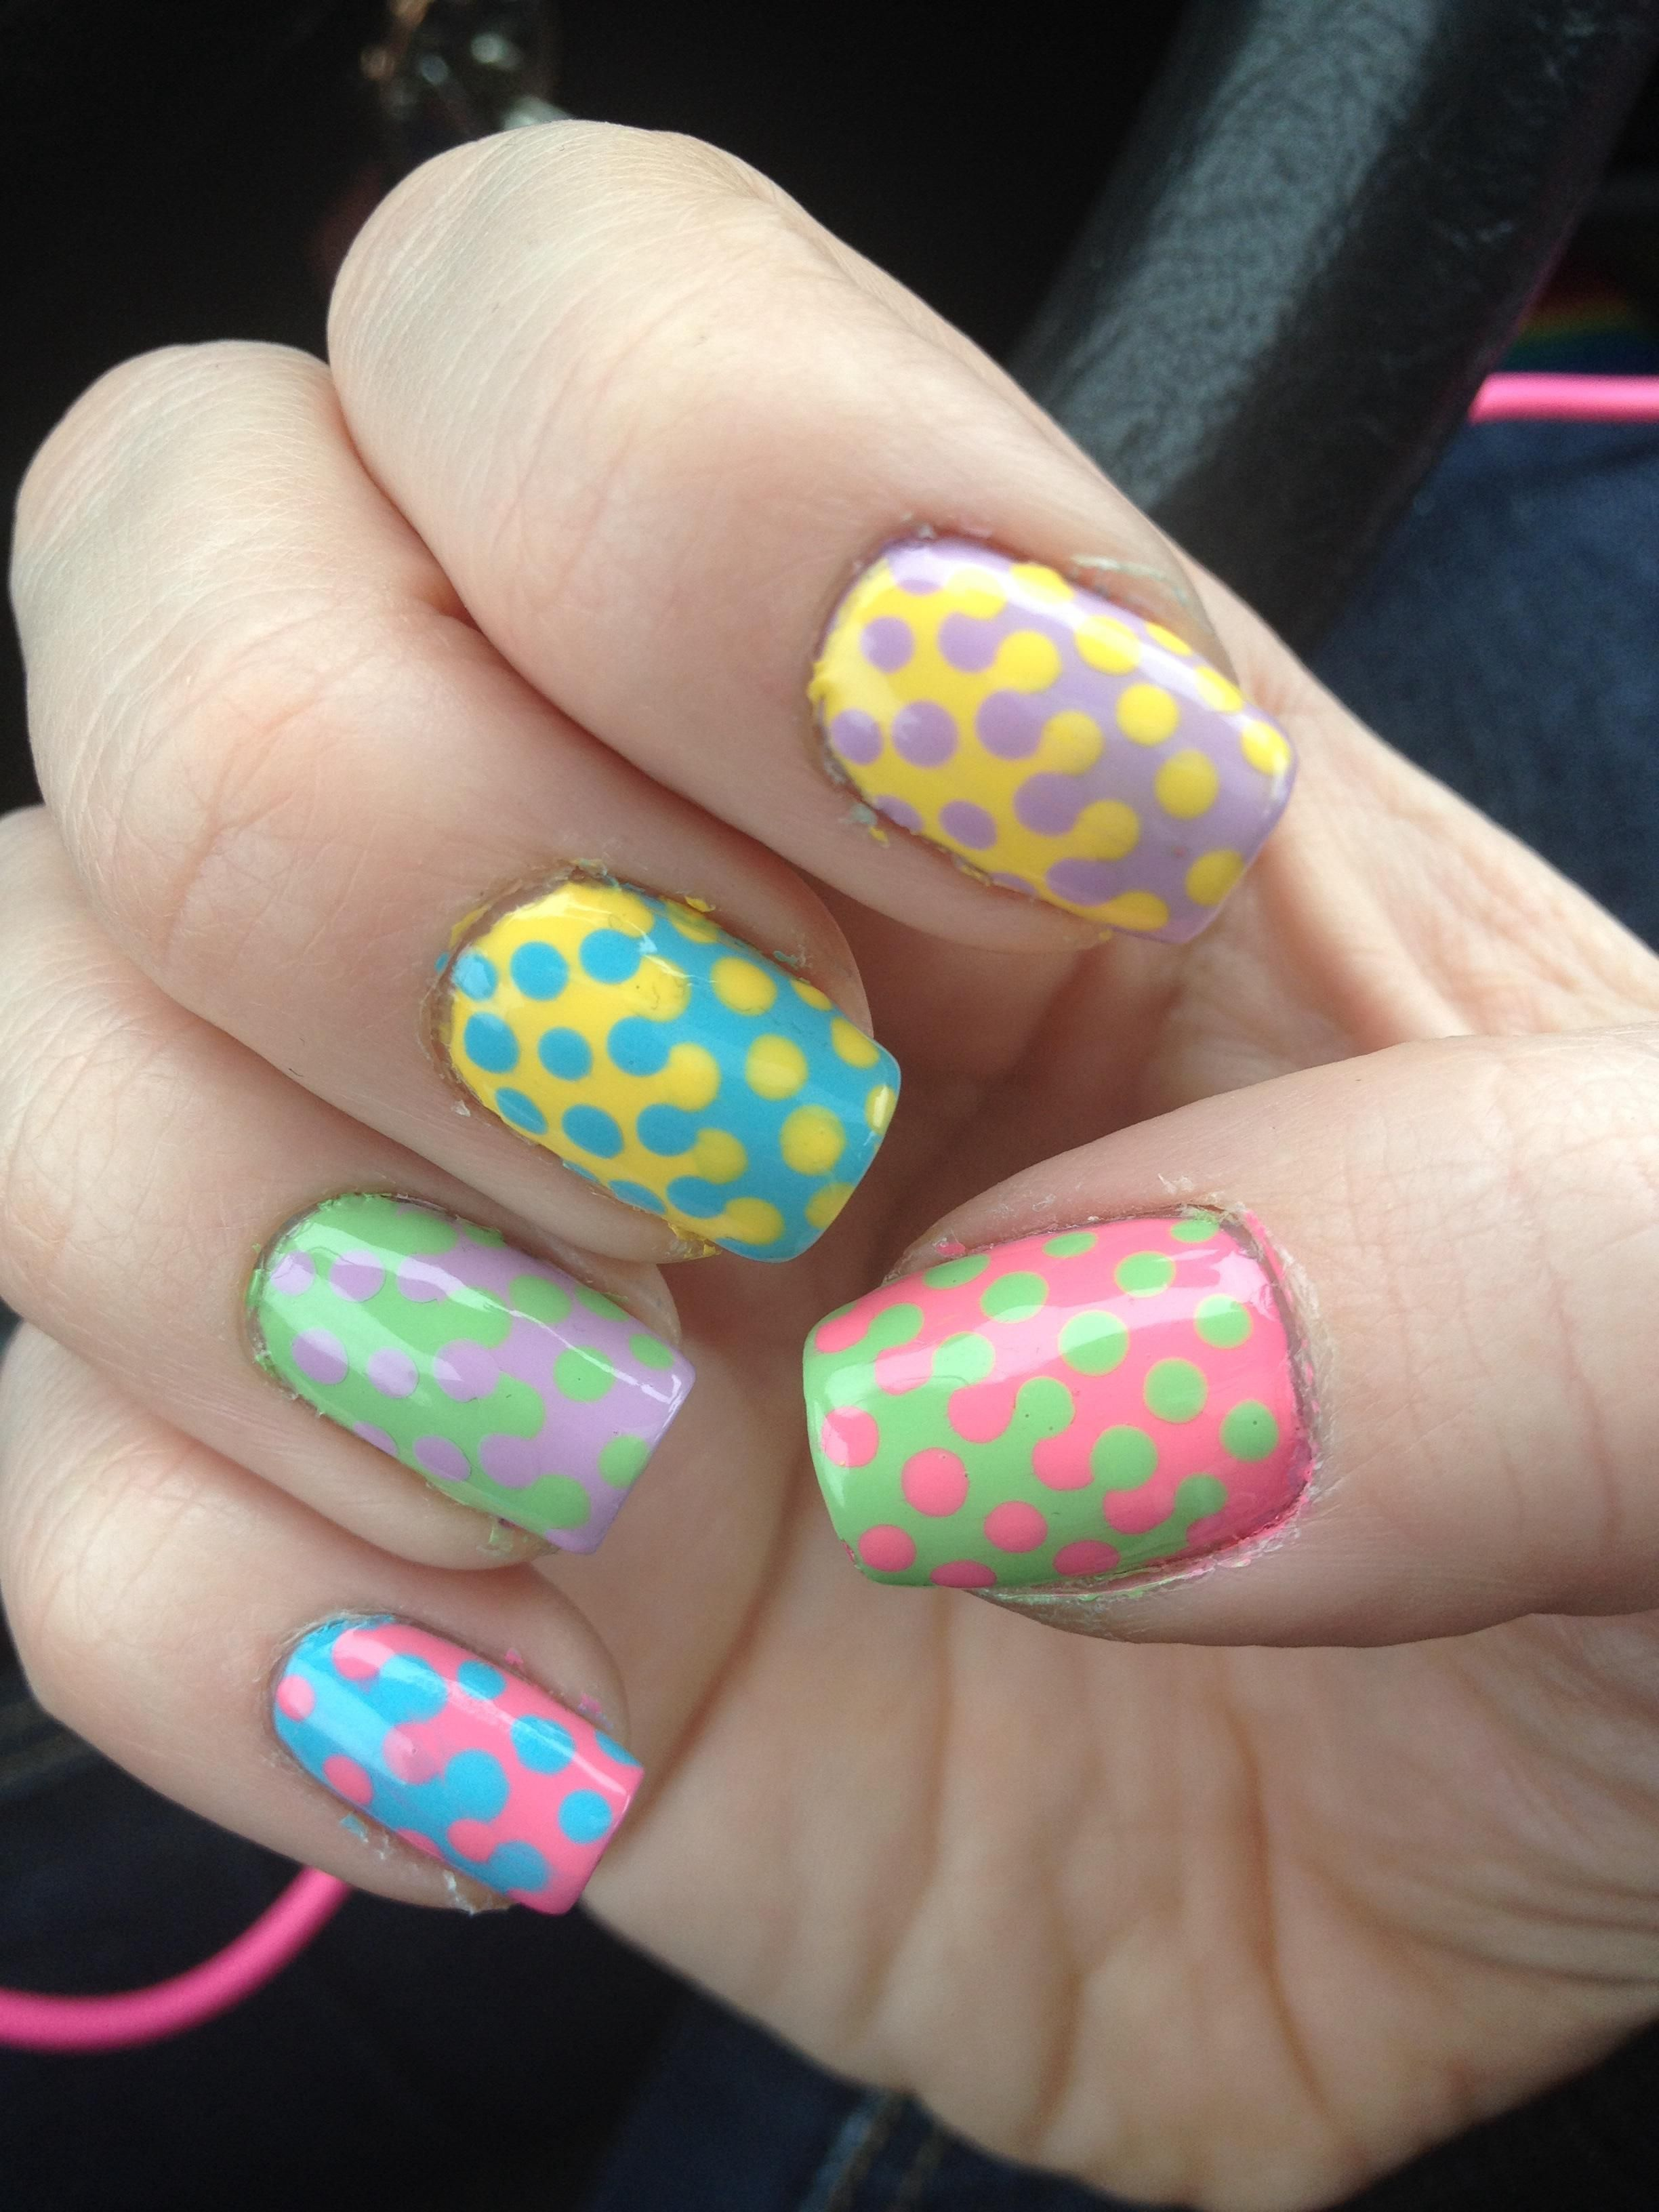 50 Spring Nail Art Ideas to Spruce Up Your Paws | Spring nails and ...